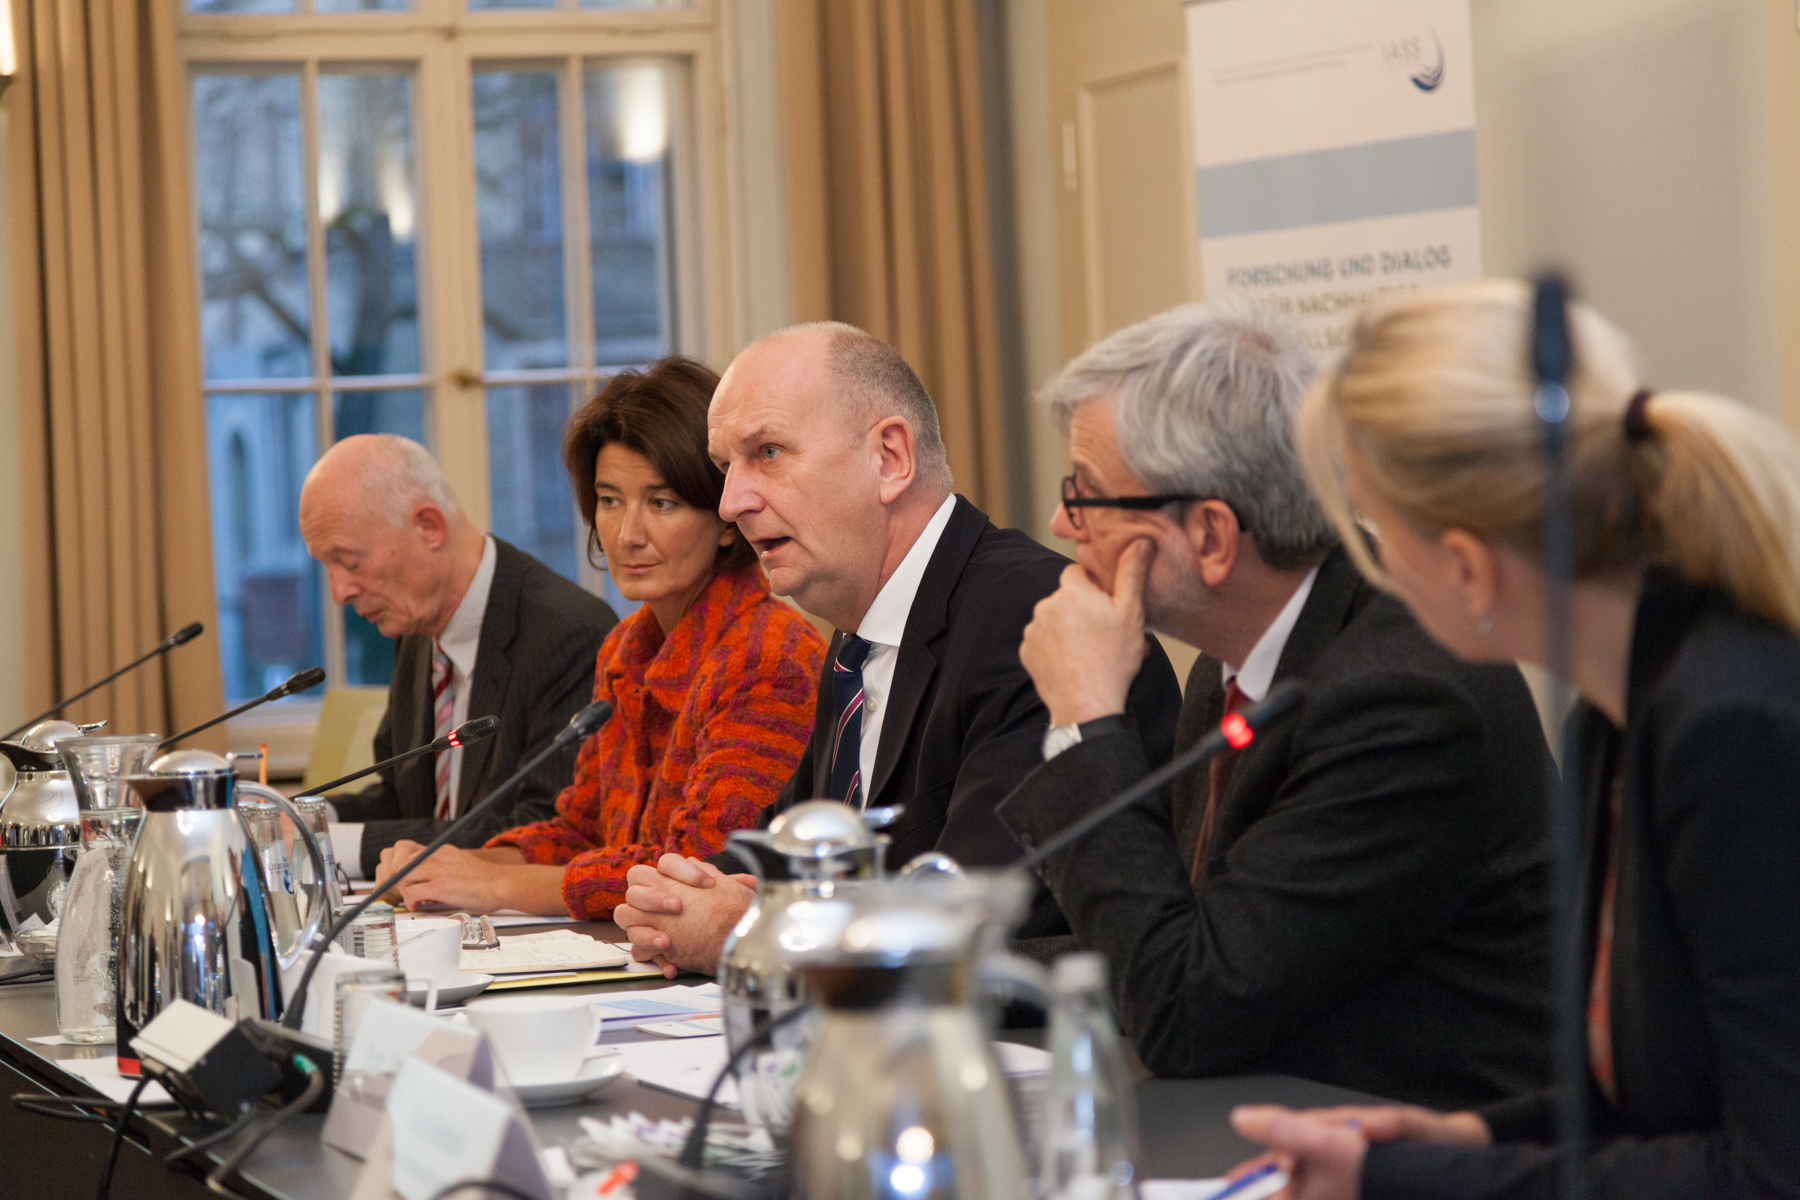 A discussion of Brandenburg's energy and climate policy with (from left to right) Hans Joachim Schellnhuber (PIK), Patrizia Nanz (IASS), Dietmar Woidke, Governor of Brandenburg, Ortwin Renn (IASS), and Viola Gerlach (IASS, moderator).